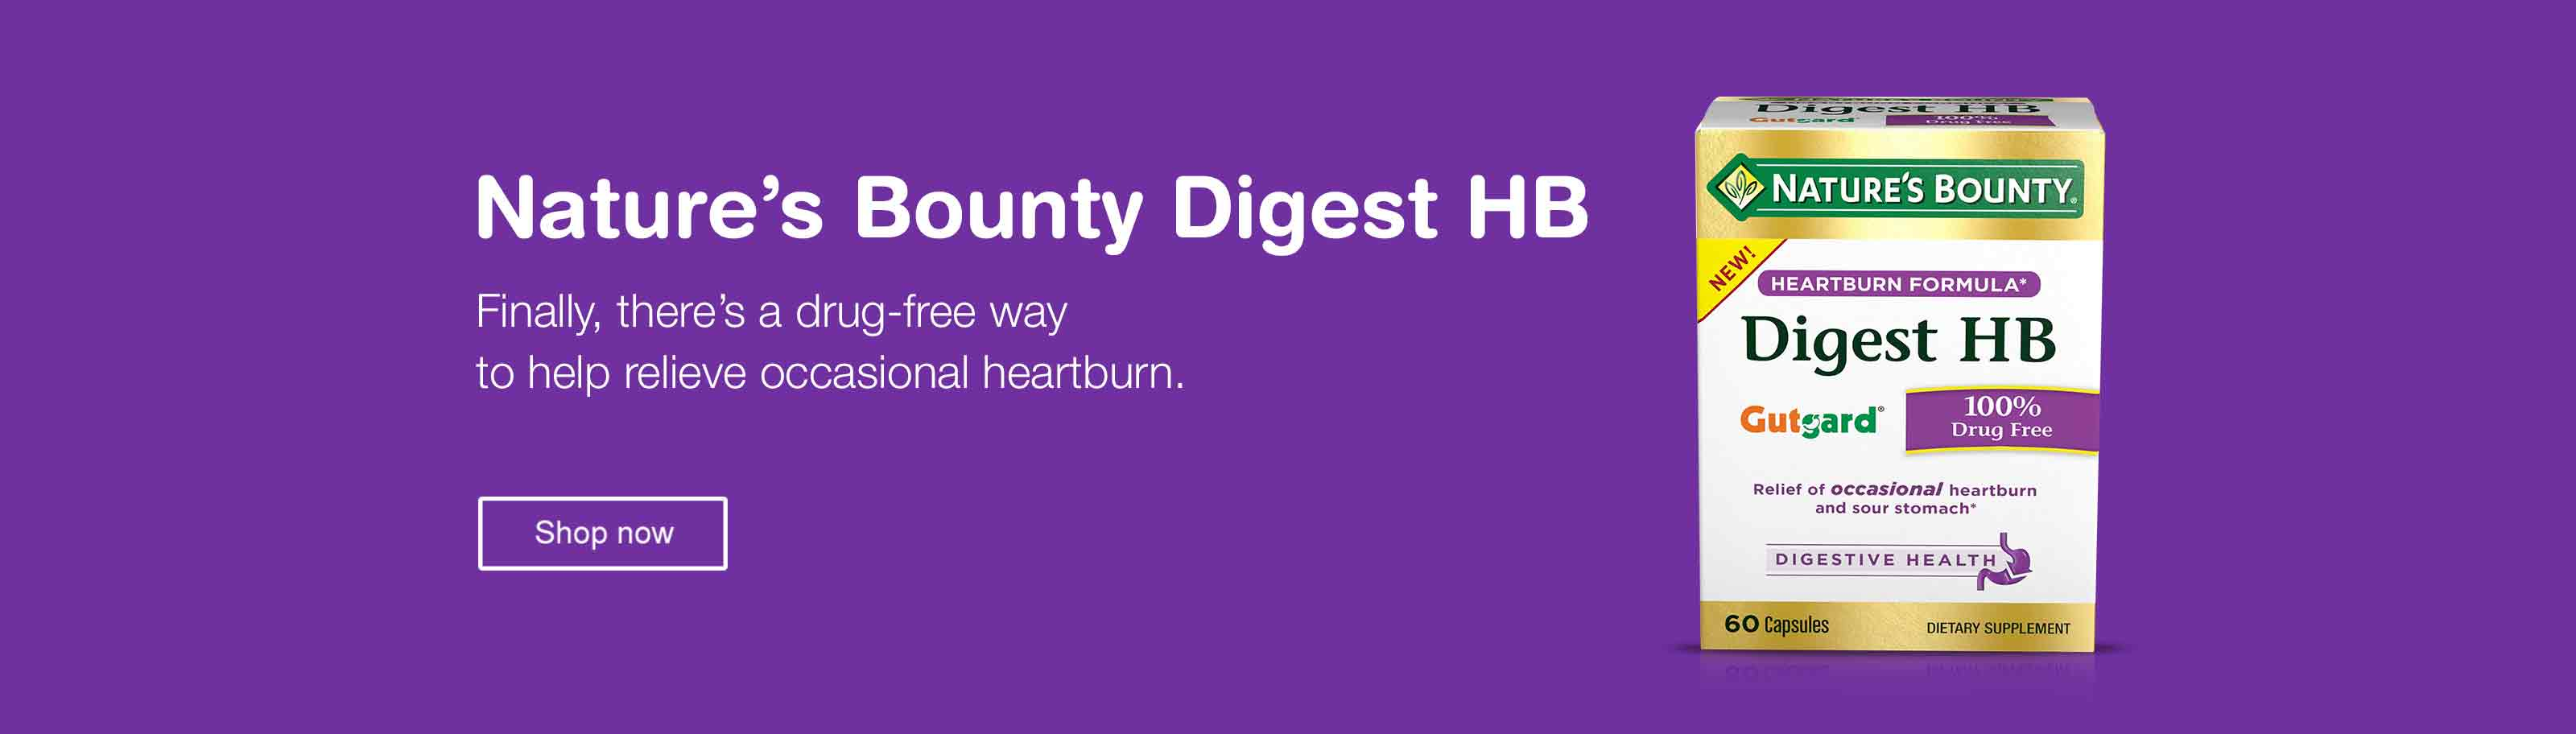 Nature's Bounty Digest HB. Finally, there's a drug-free way to help relieve occasional heartburn. Shop now.